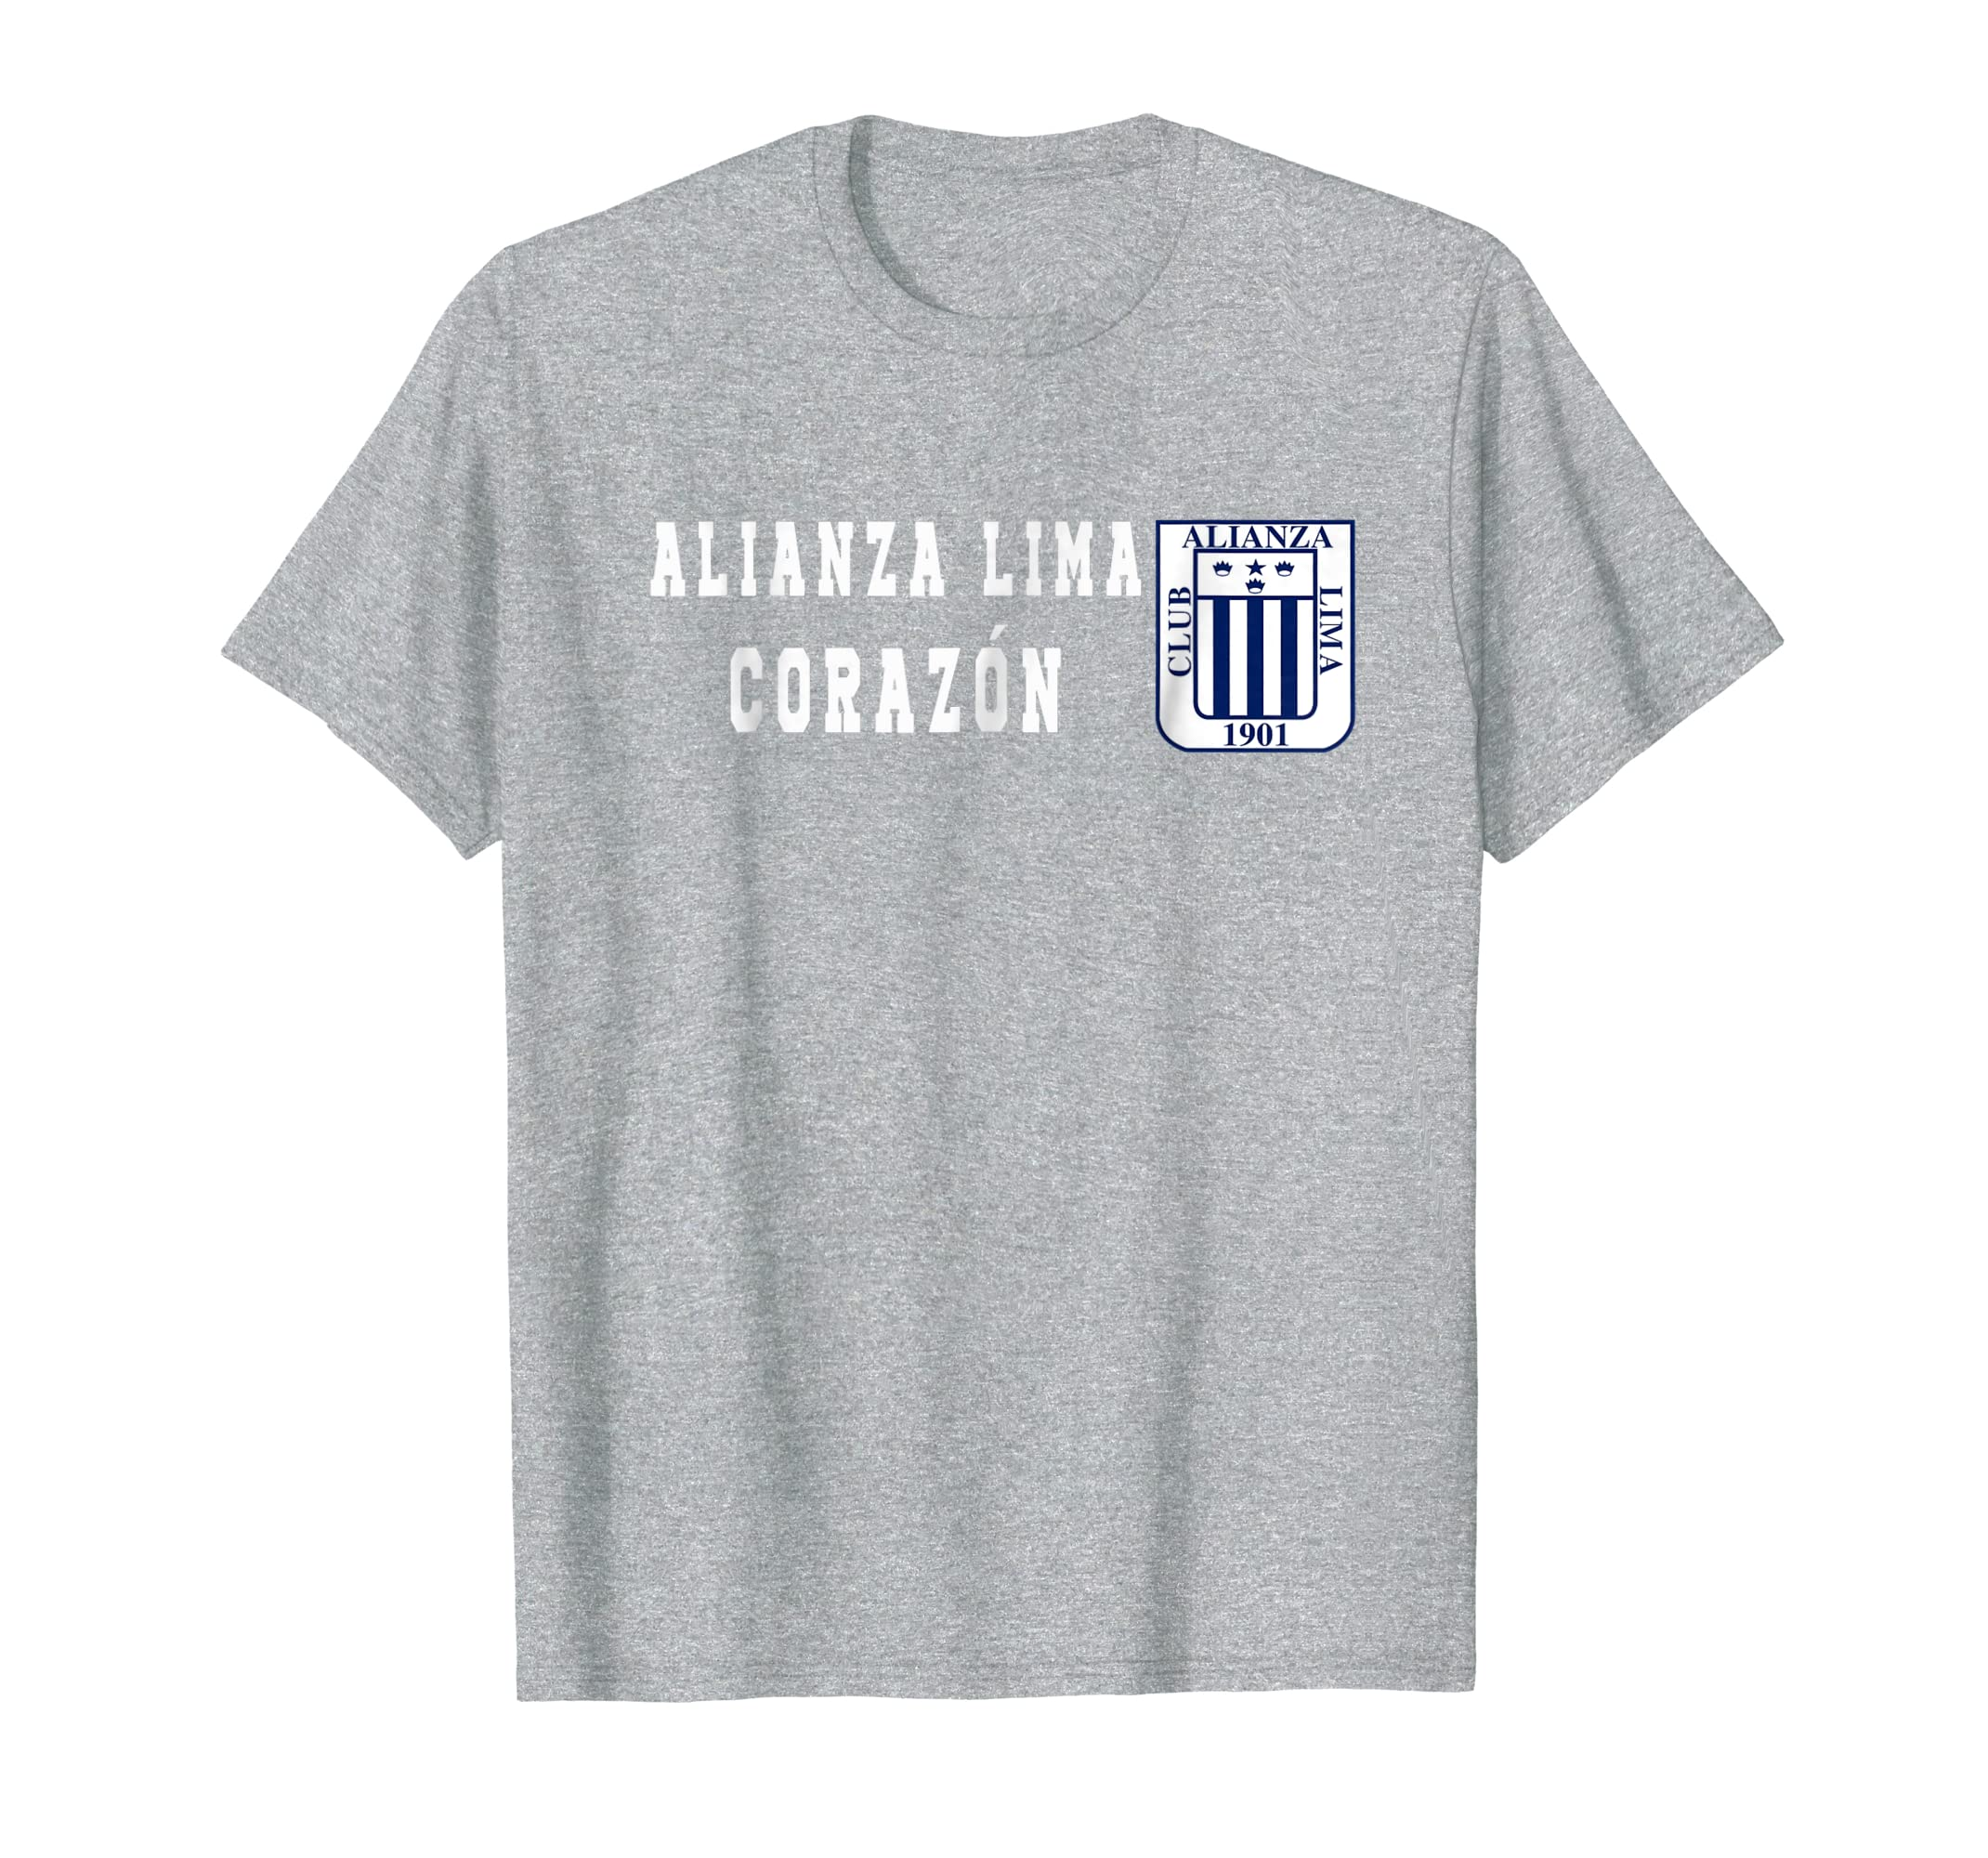 Amazon.com: ALIANZA LIMA CORAZON FUTBOL PERUANO FAN PERUVIAN T SHIRT: Clothing